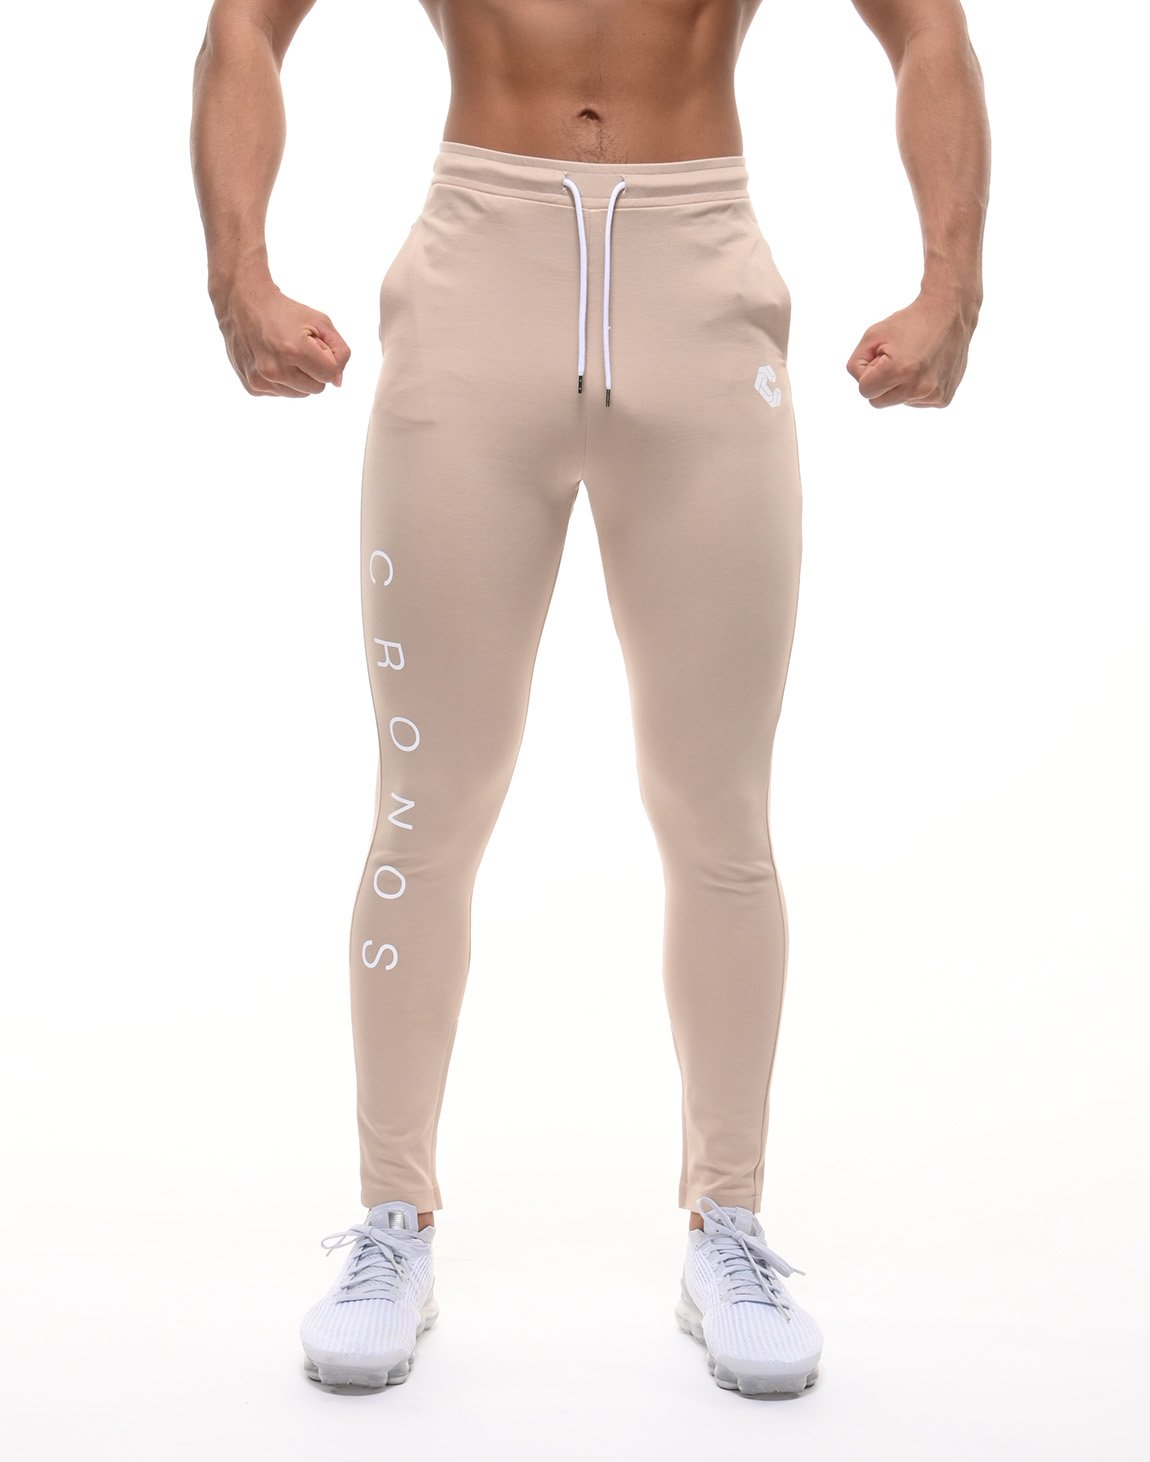 <img class='new_mark_img1' src='https://img.shop-pro.jp/img/new/icons55.gif' style='border:none;display:inline;margin:0px;padding:0px;width:auto;' />CRONOS SIDE FONT PANTS 【BEIGE】